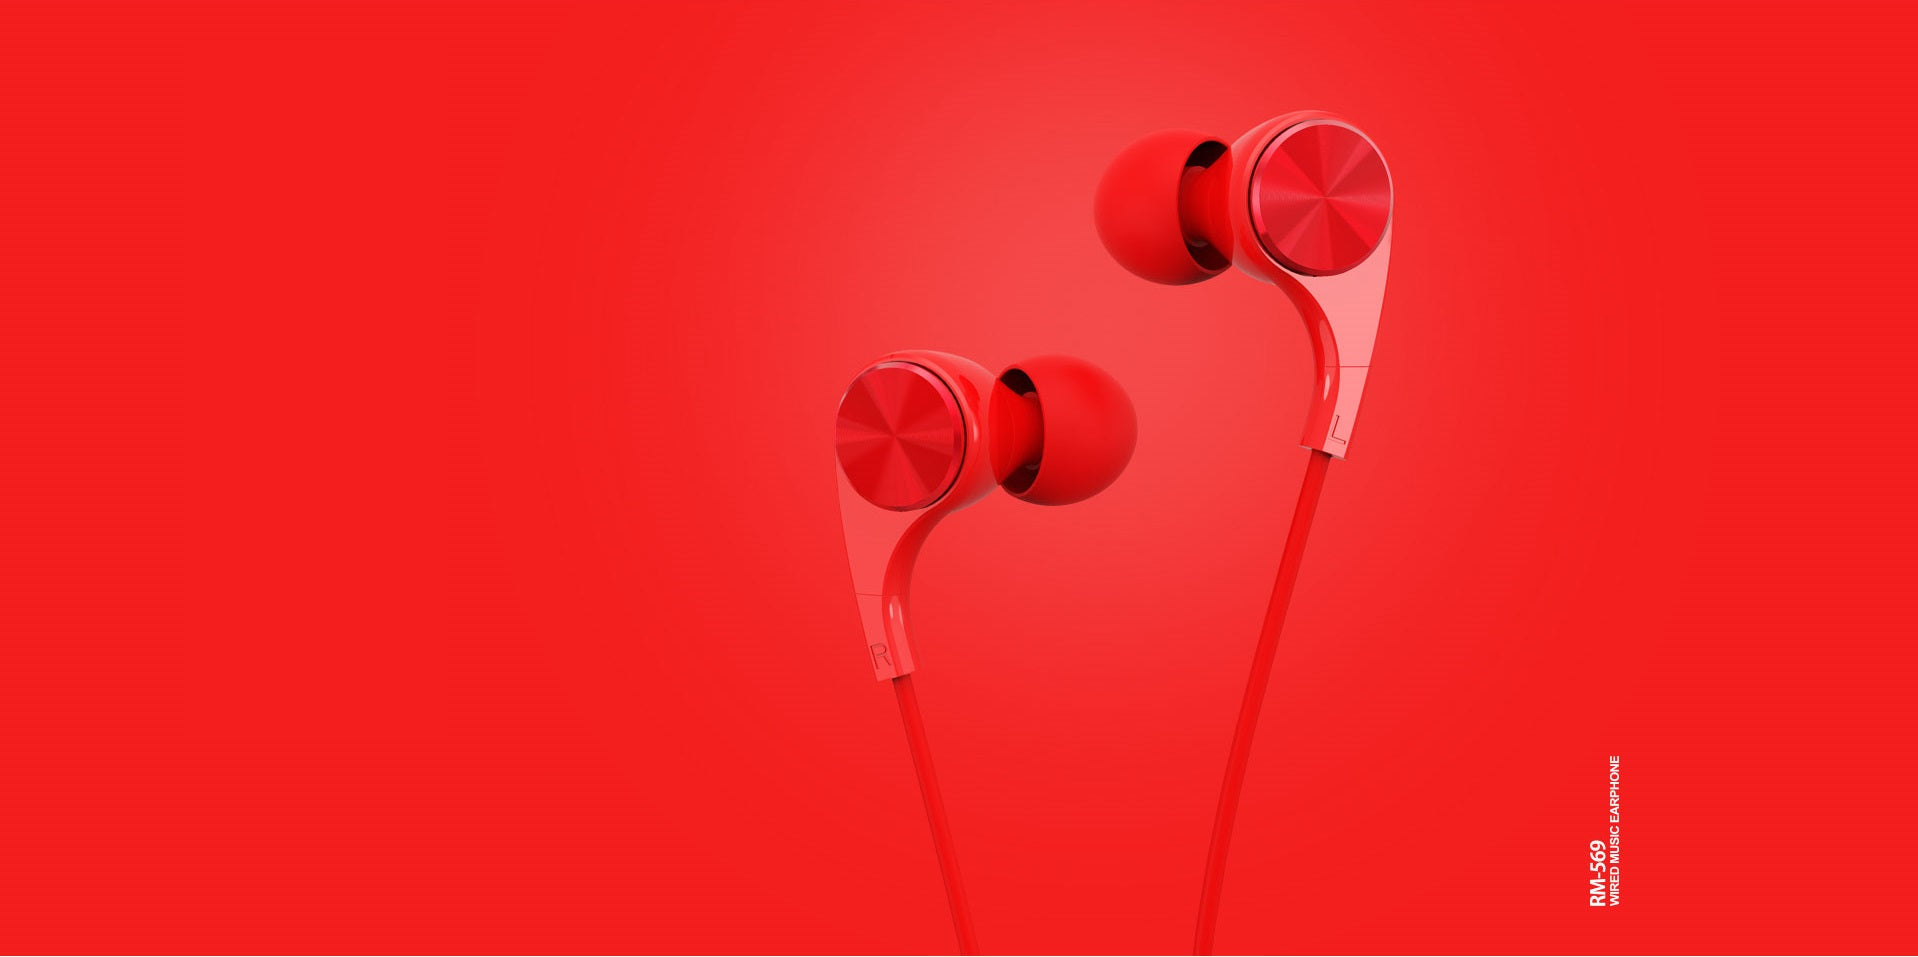 https://www.iremax.com/products/music-wired-earphone-rm-569